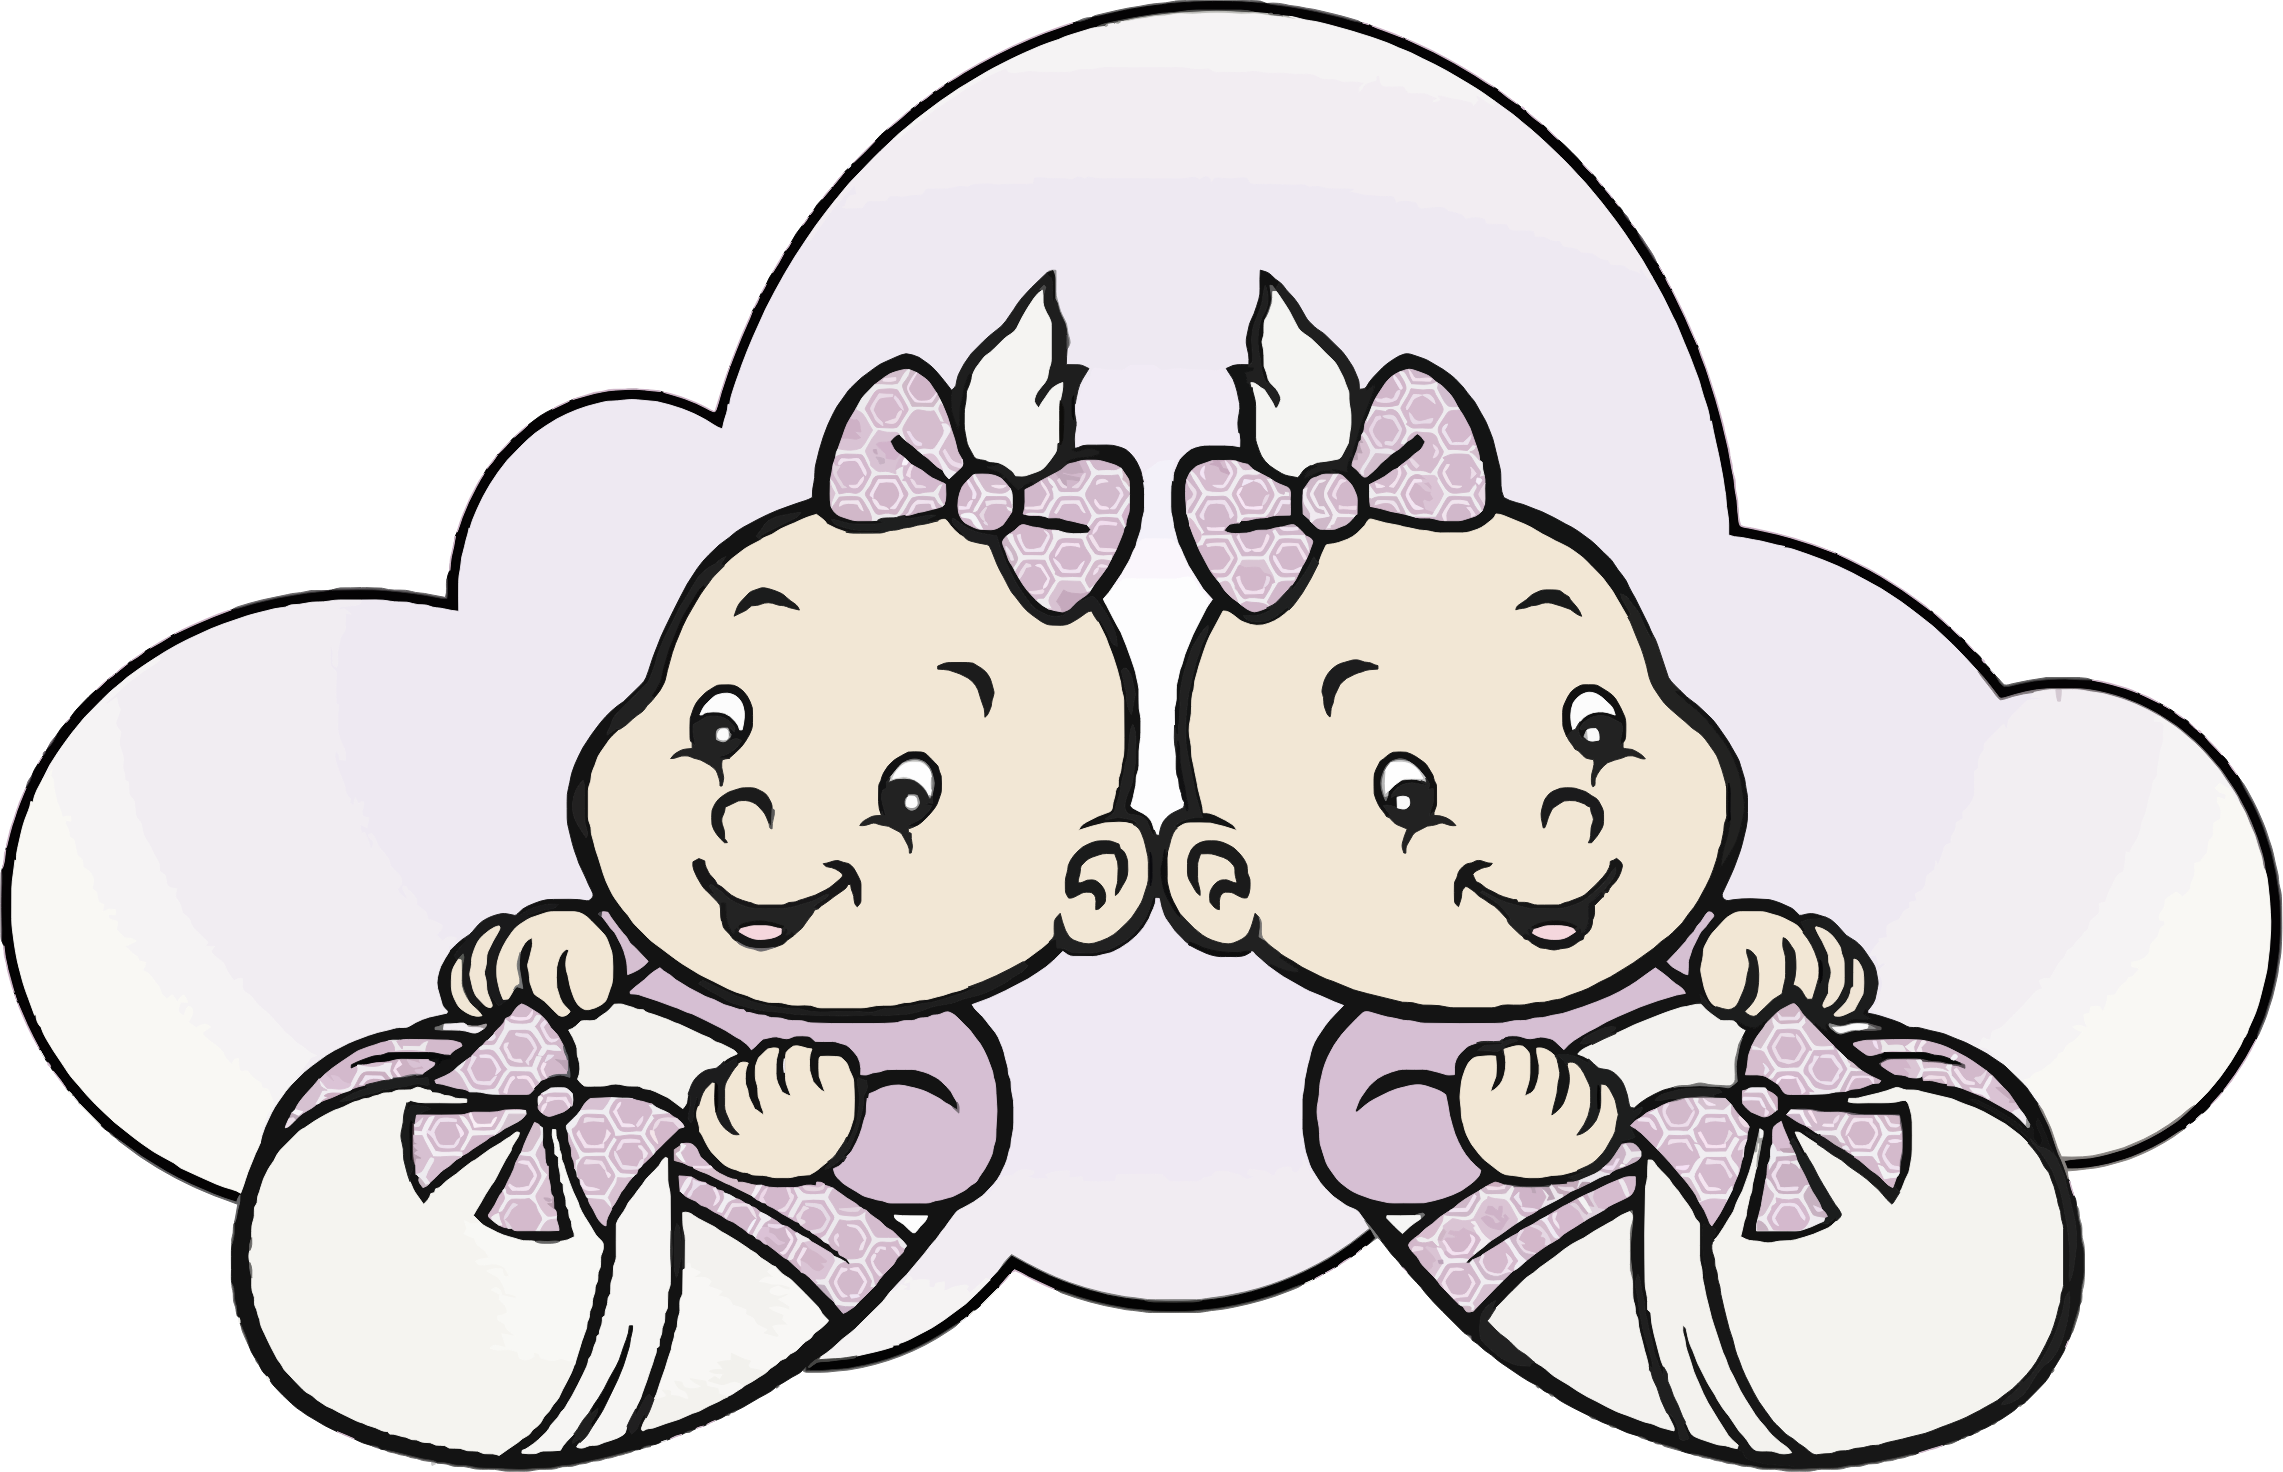 Cloud Babies 2 by GDJ